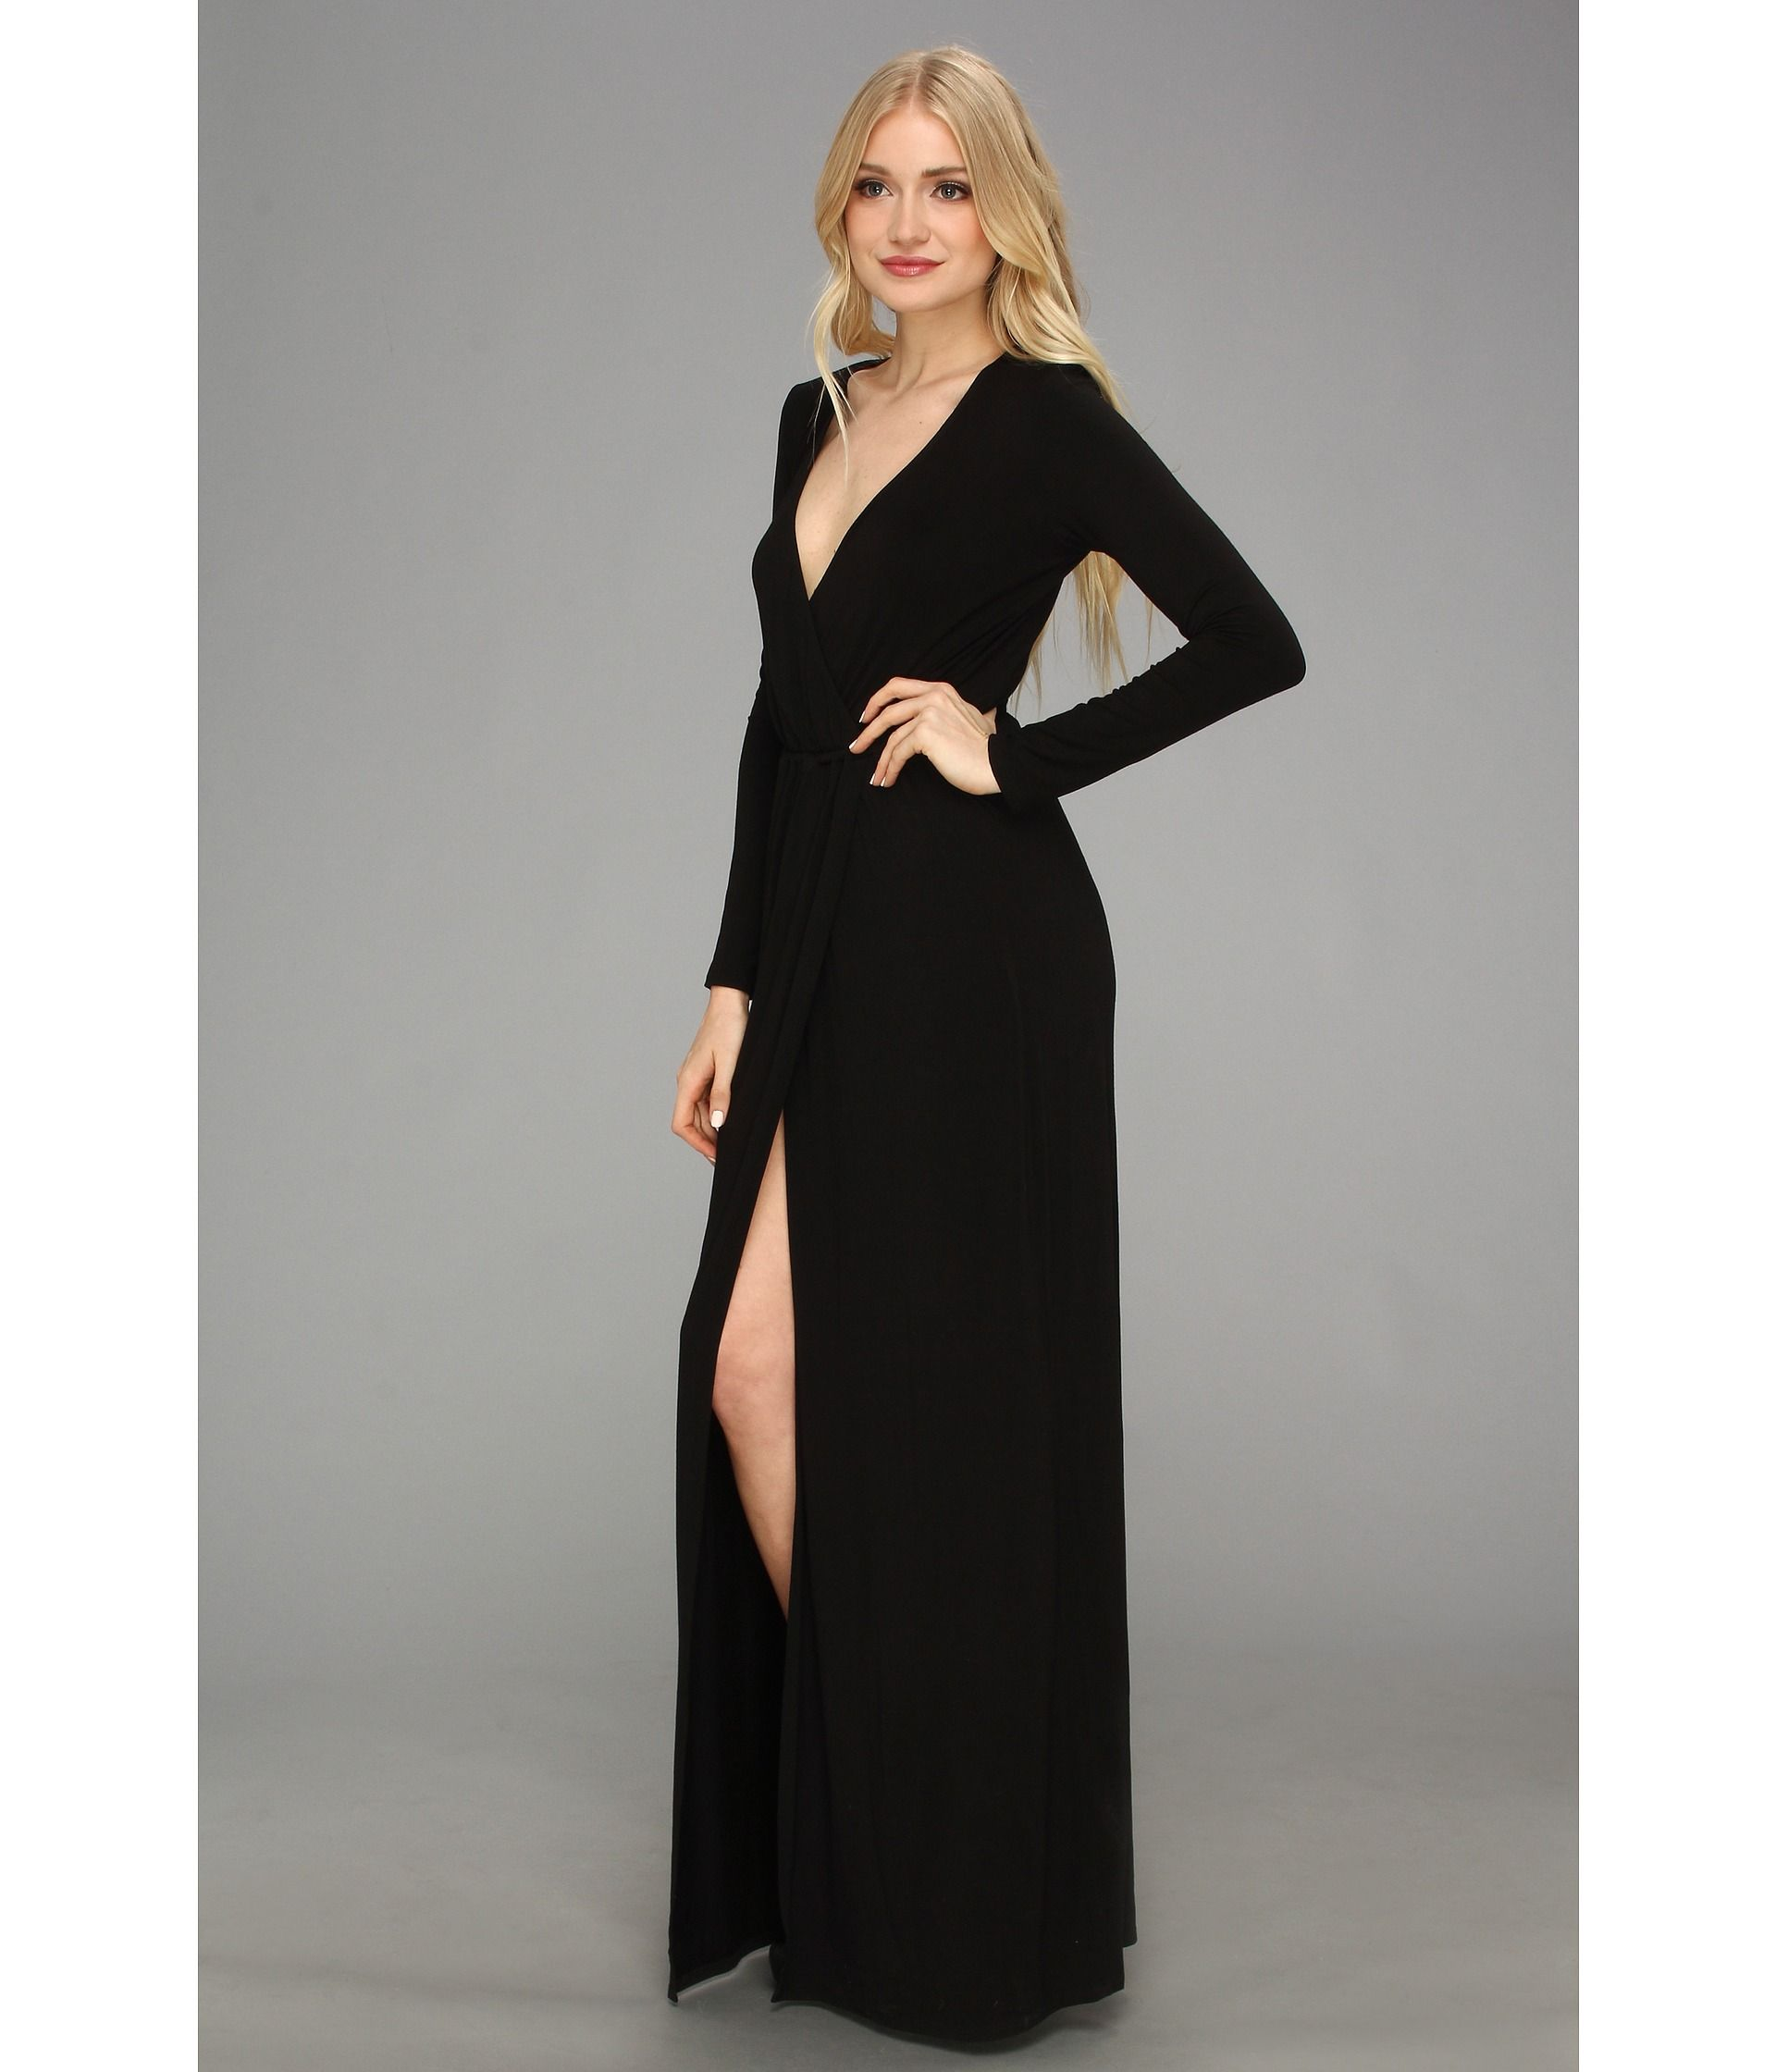 Long Sleeve Maxi Wrap Dress Photo Album - Reikian